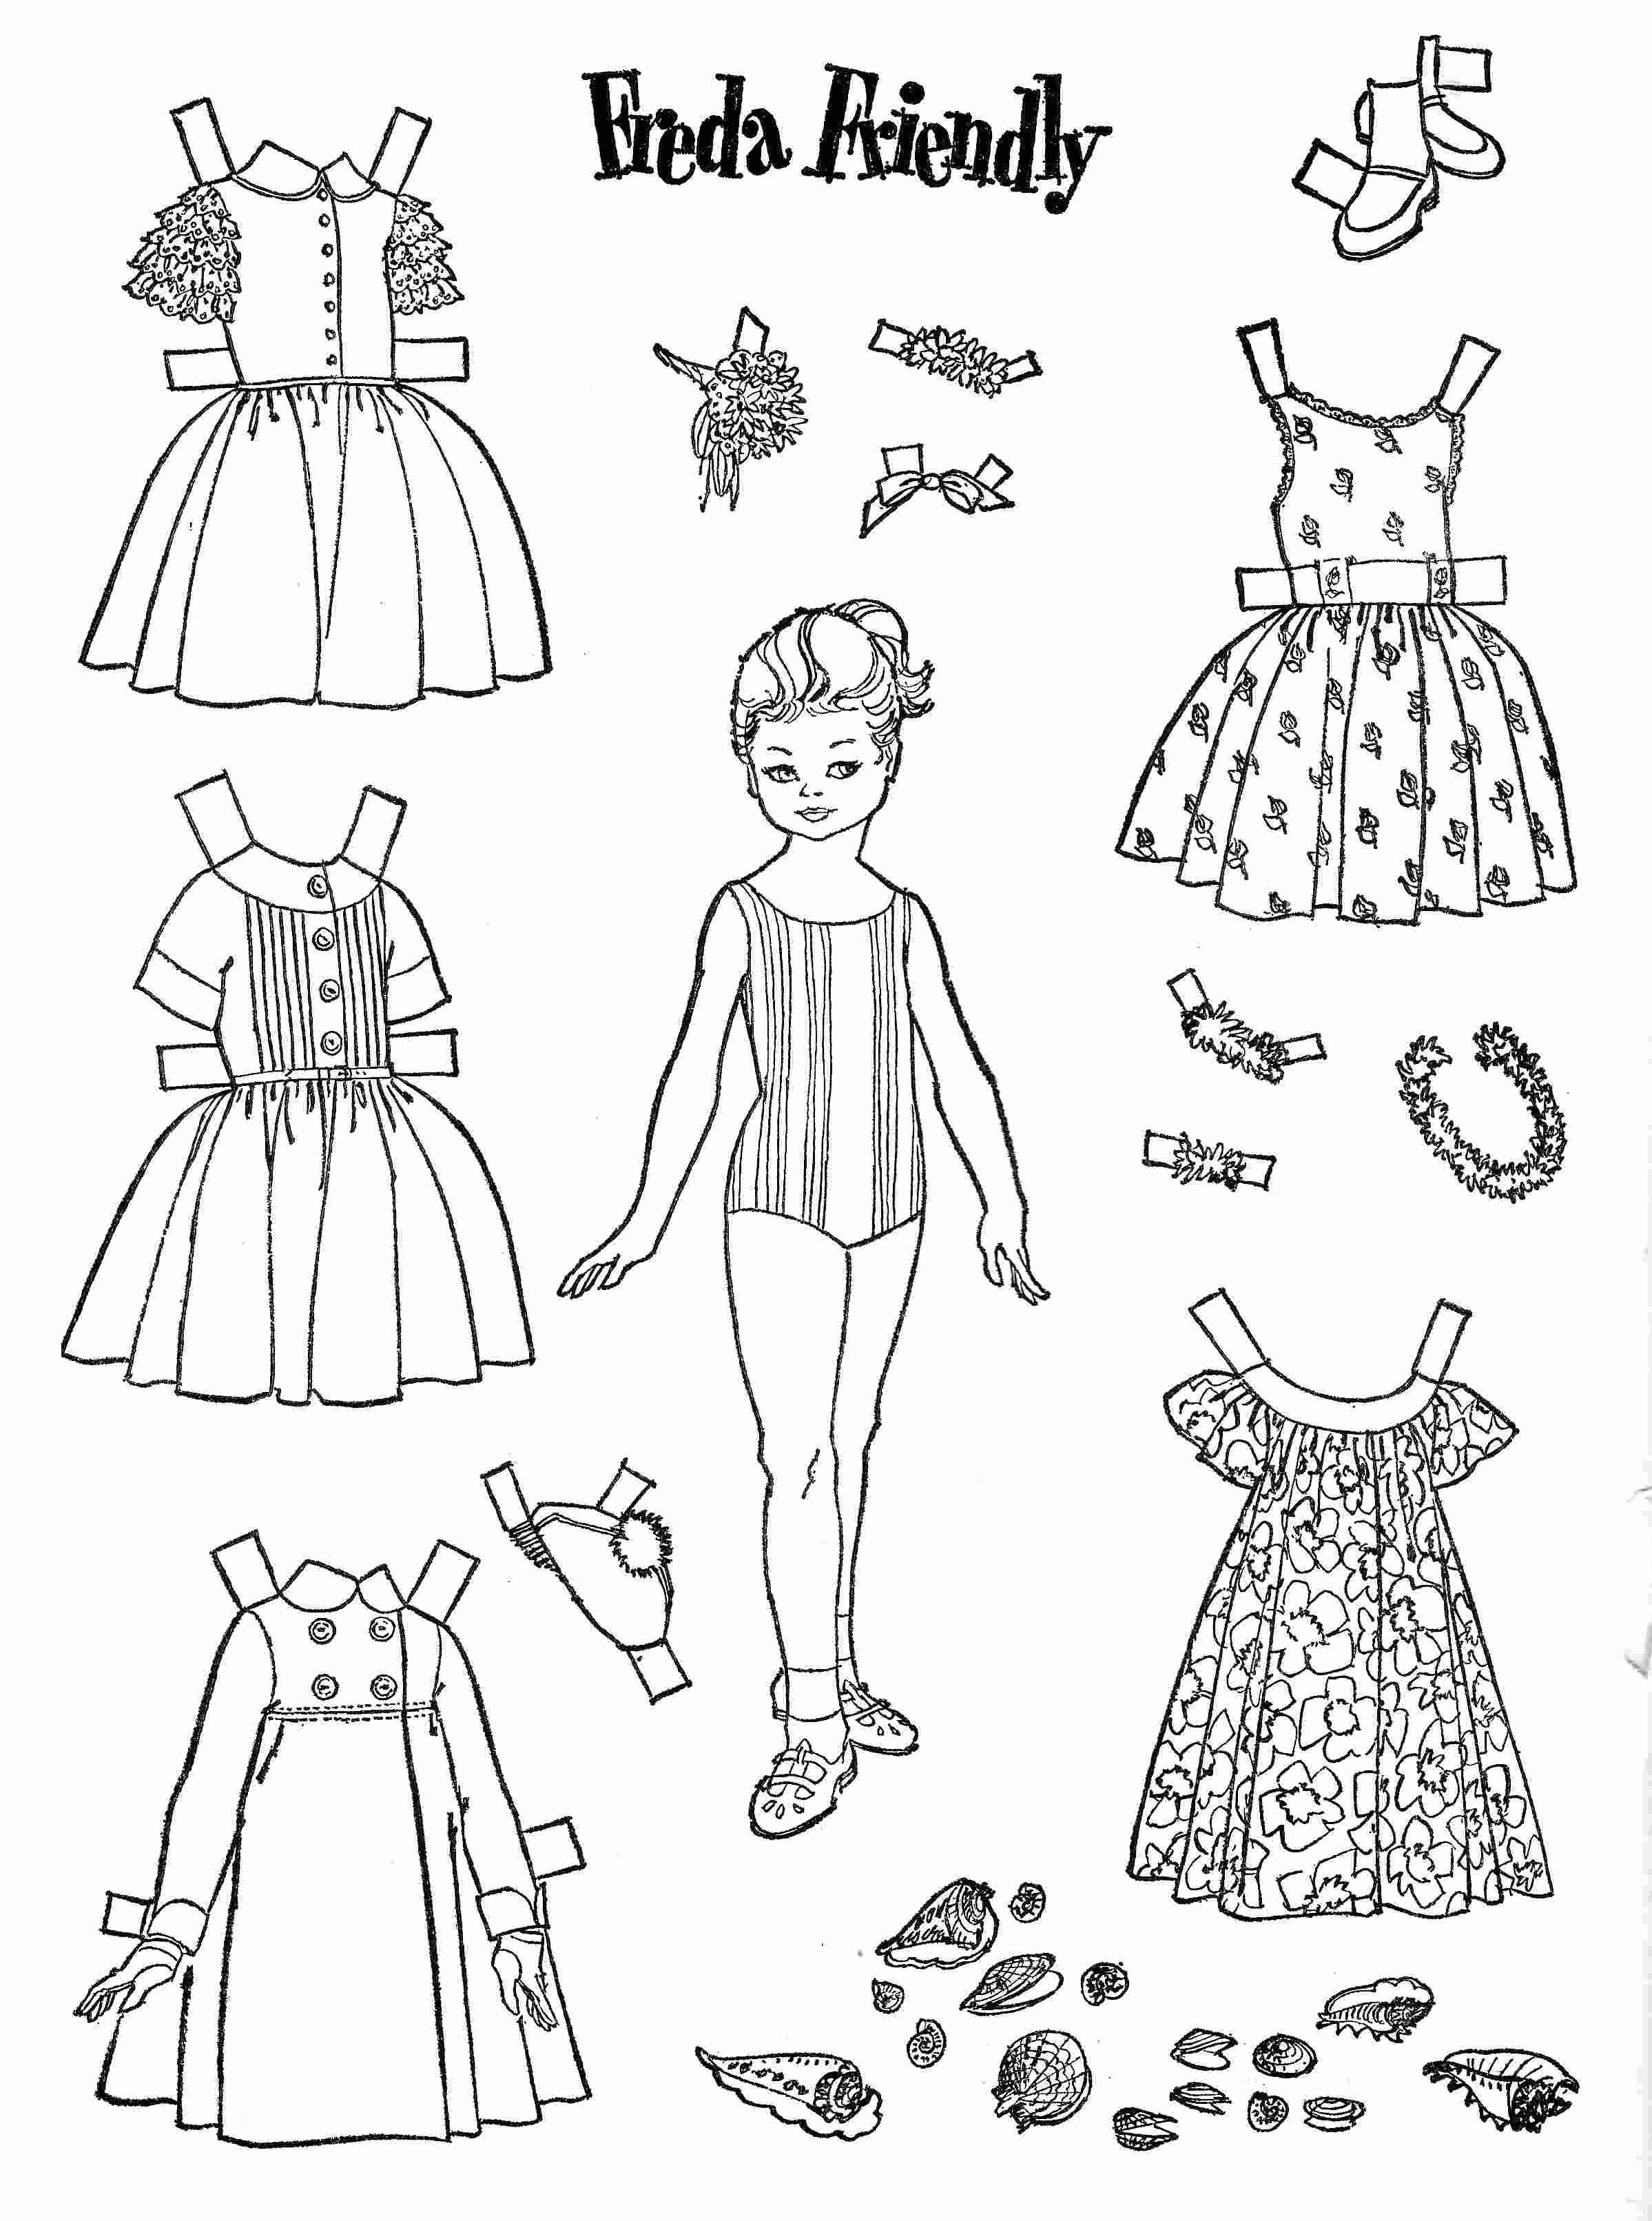 paper doll dress up template marisole monday vintage roses paper thin personas paper dress up doll template